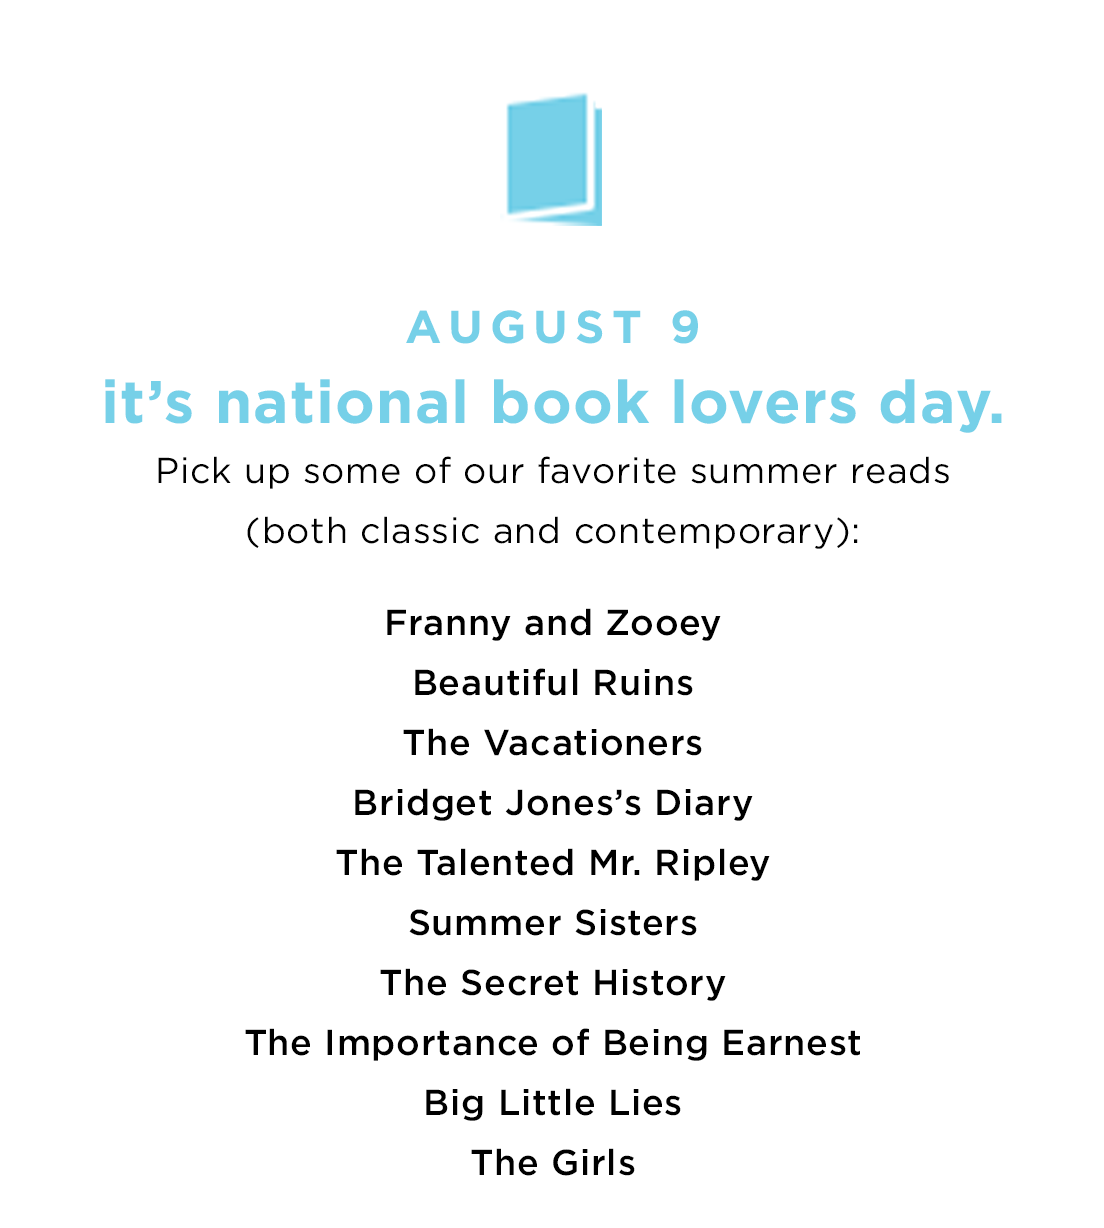 AUGUST 9 - It's national book lovers day.